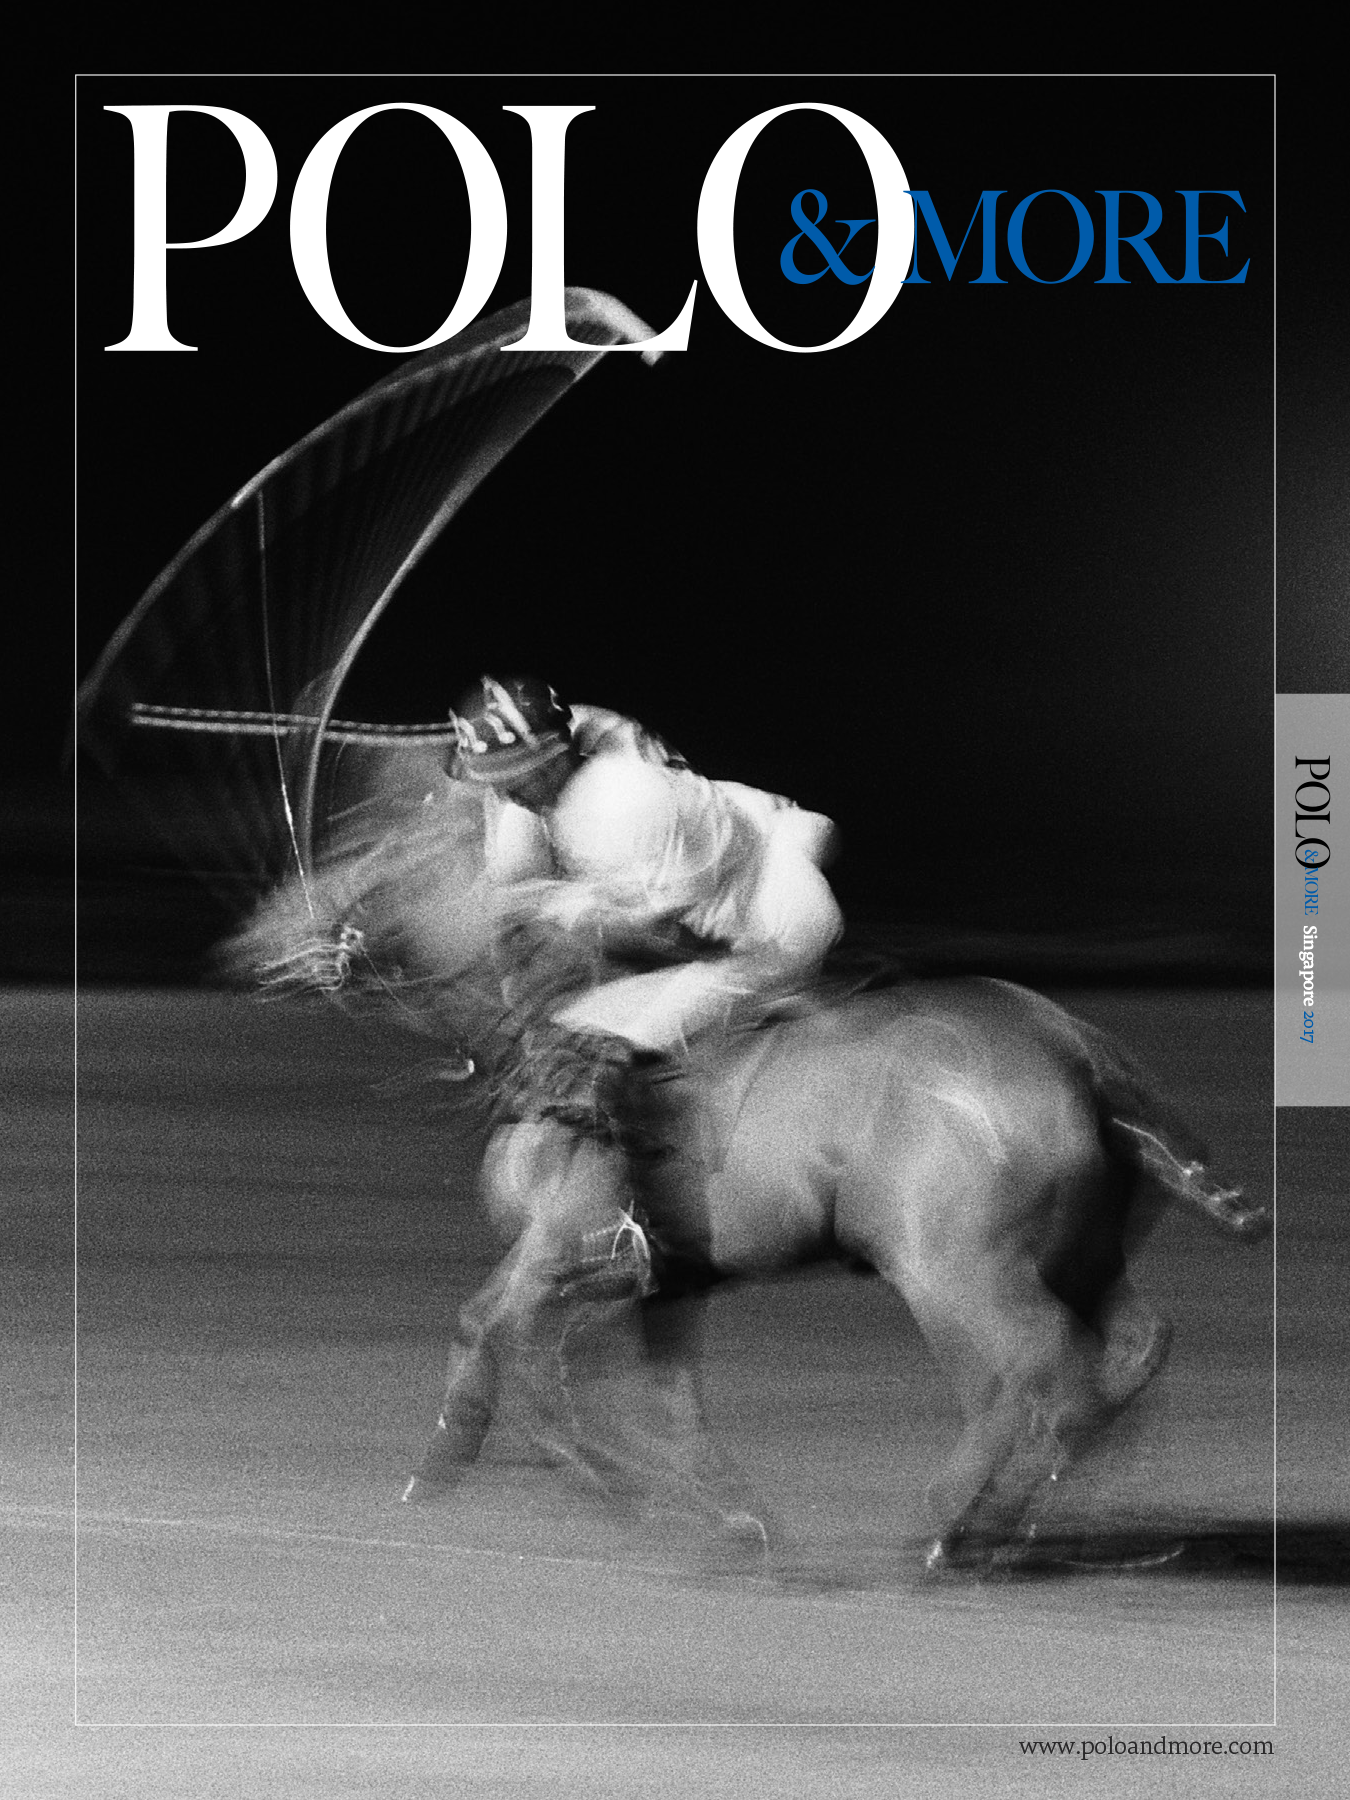 Polo & More, Singapore 2017 Issue